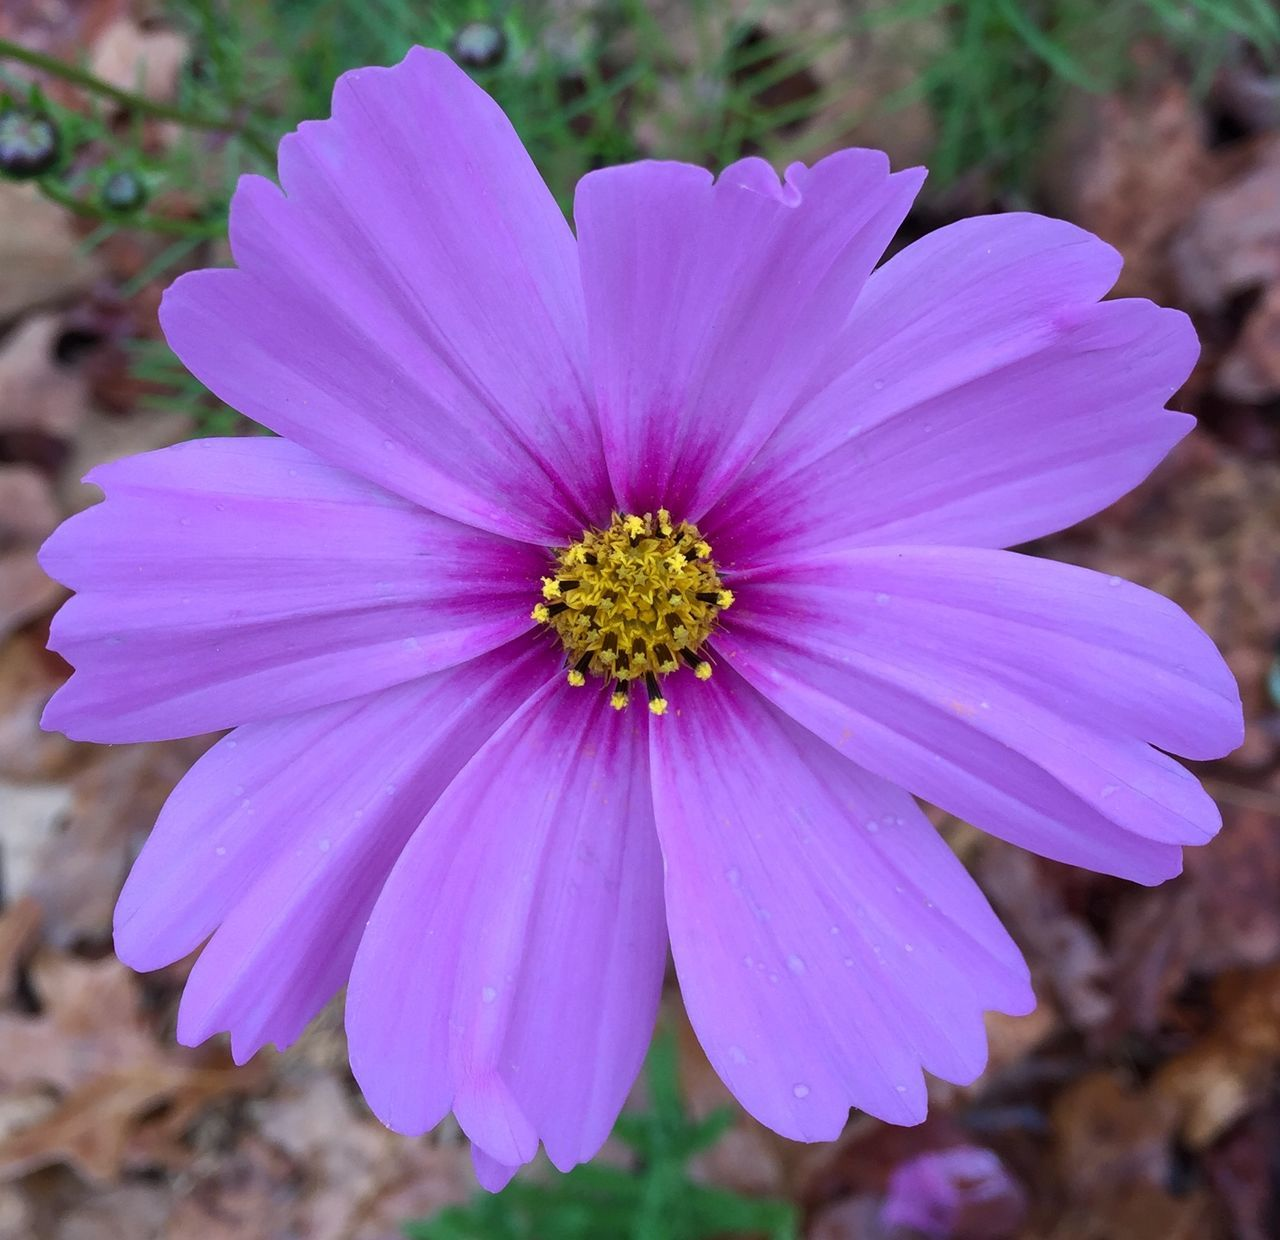 Purple Flower Flower Showcase: February USA ShotOniPhone6 Tennessee Macro Photography Macro_flower Flowers Cottage Garden  Garden Pink Flower Cosmos Altamont Tennessee Pastel Power Nature's Diversities